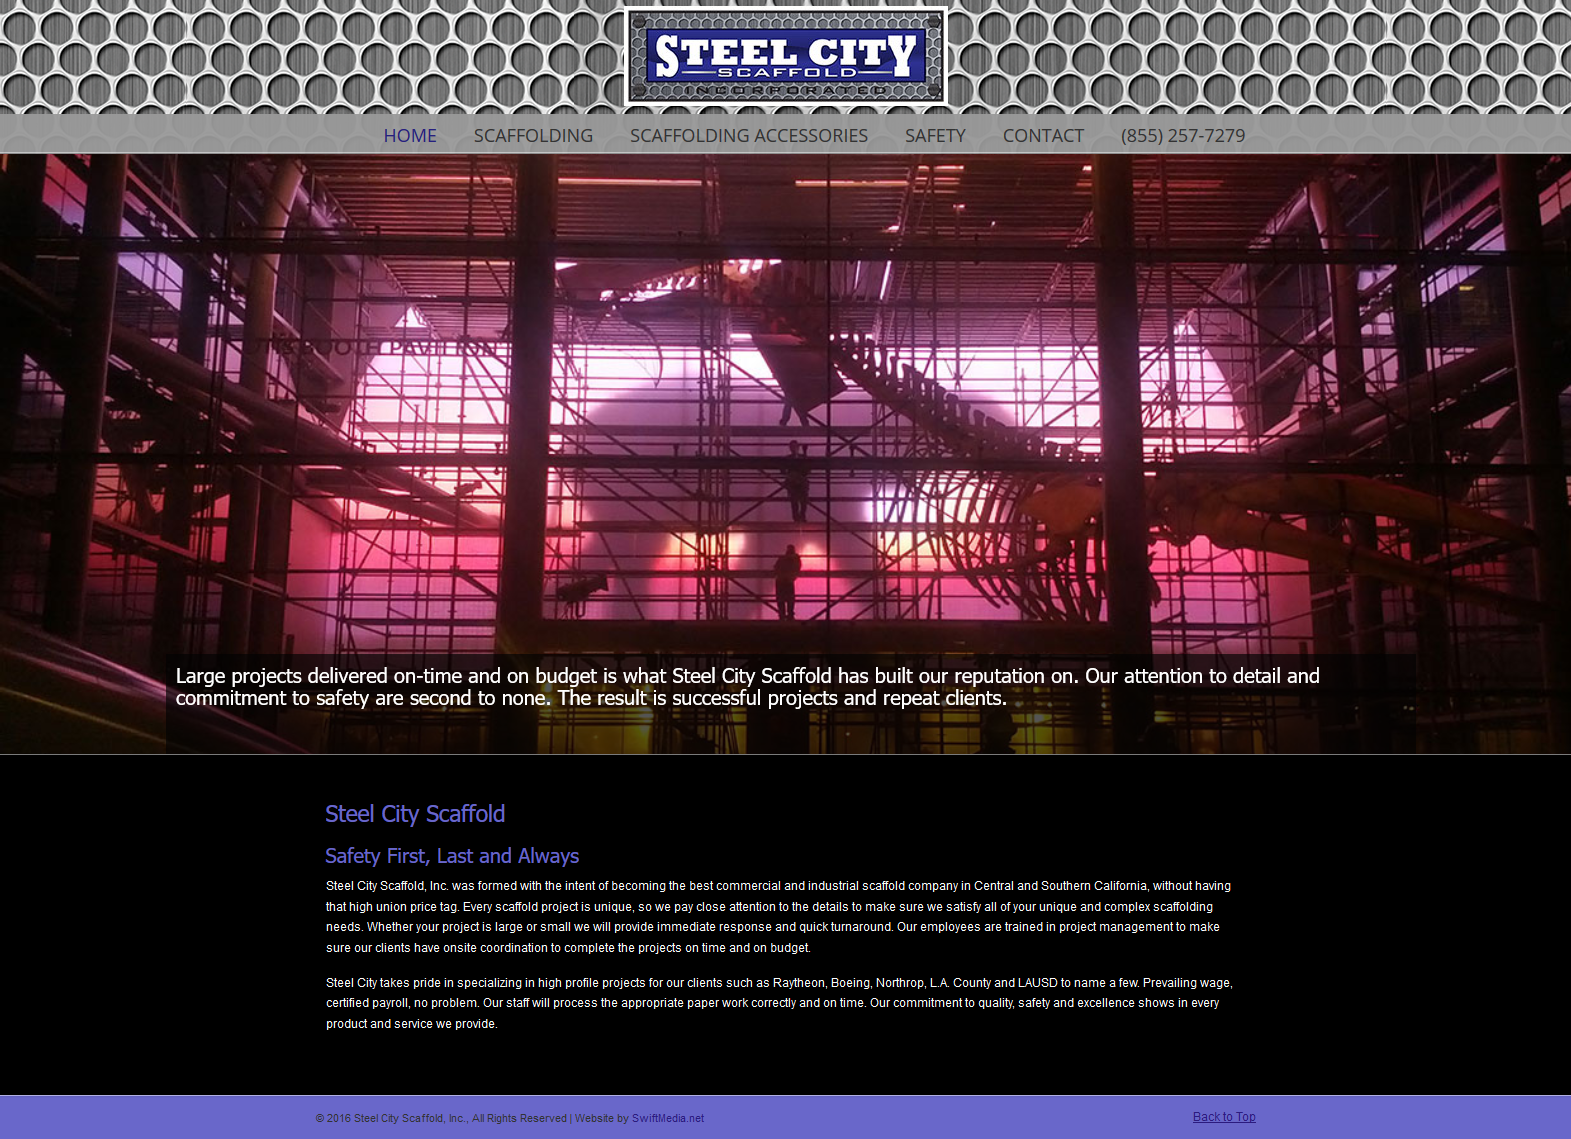 Steel_City_Scaffold_-_Steel_City_Scaffold_-_2016-04-21_14.58.44